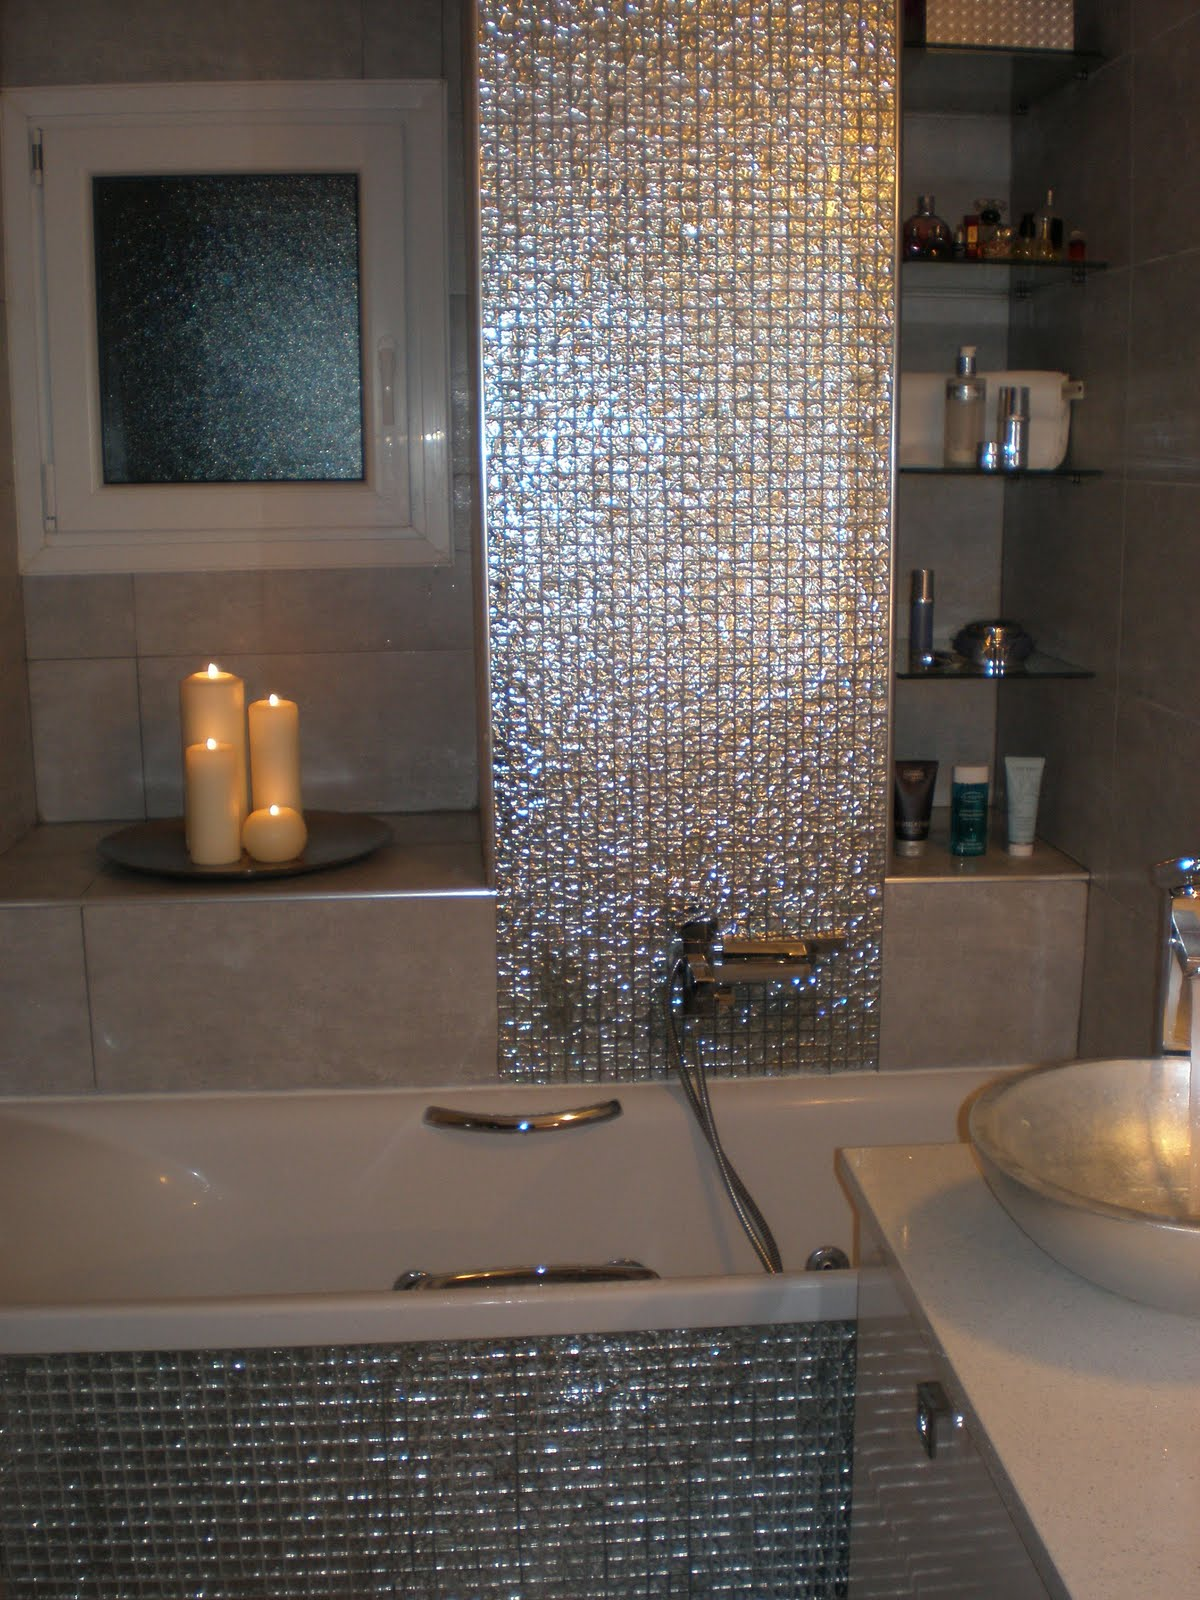 View Image Mosaic Bathroom Designs Interior 15